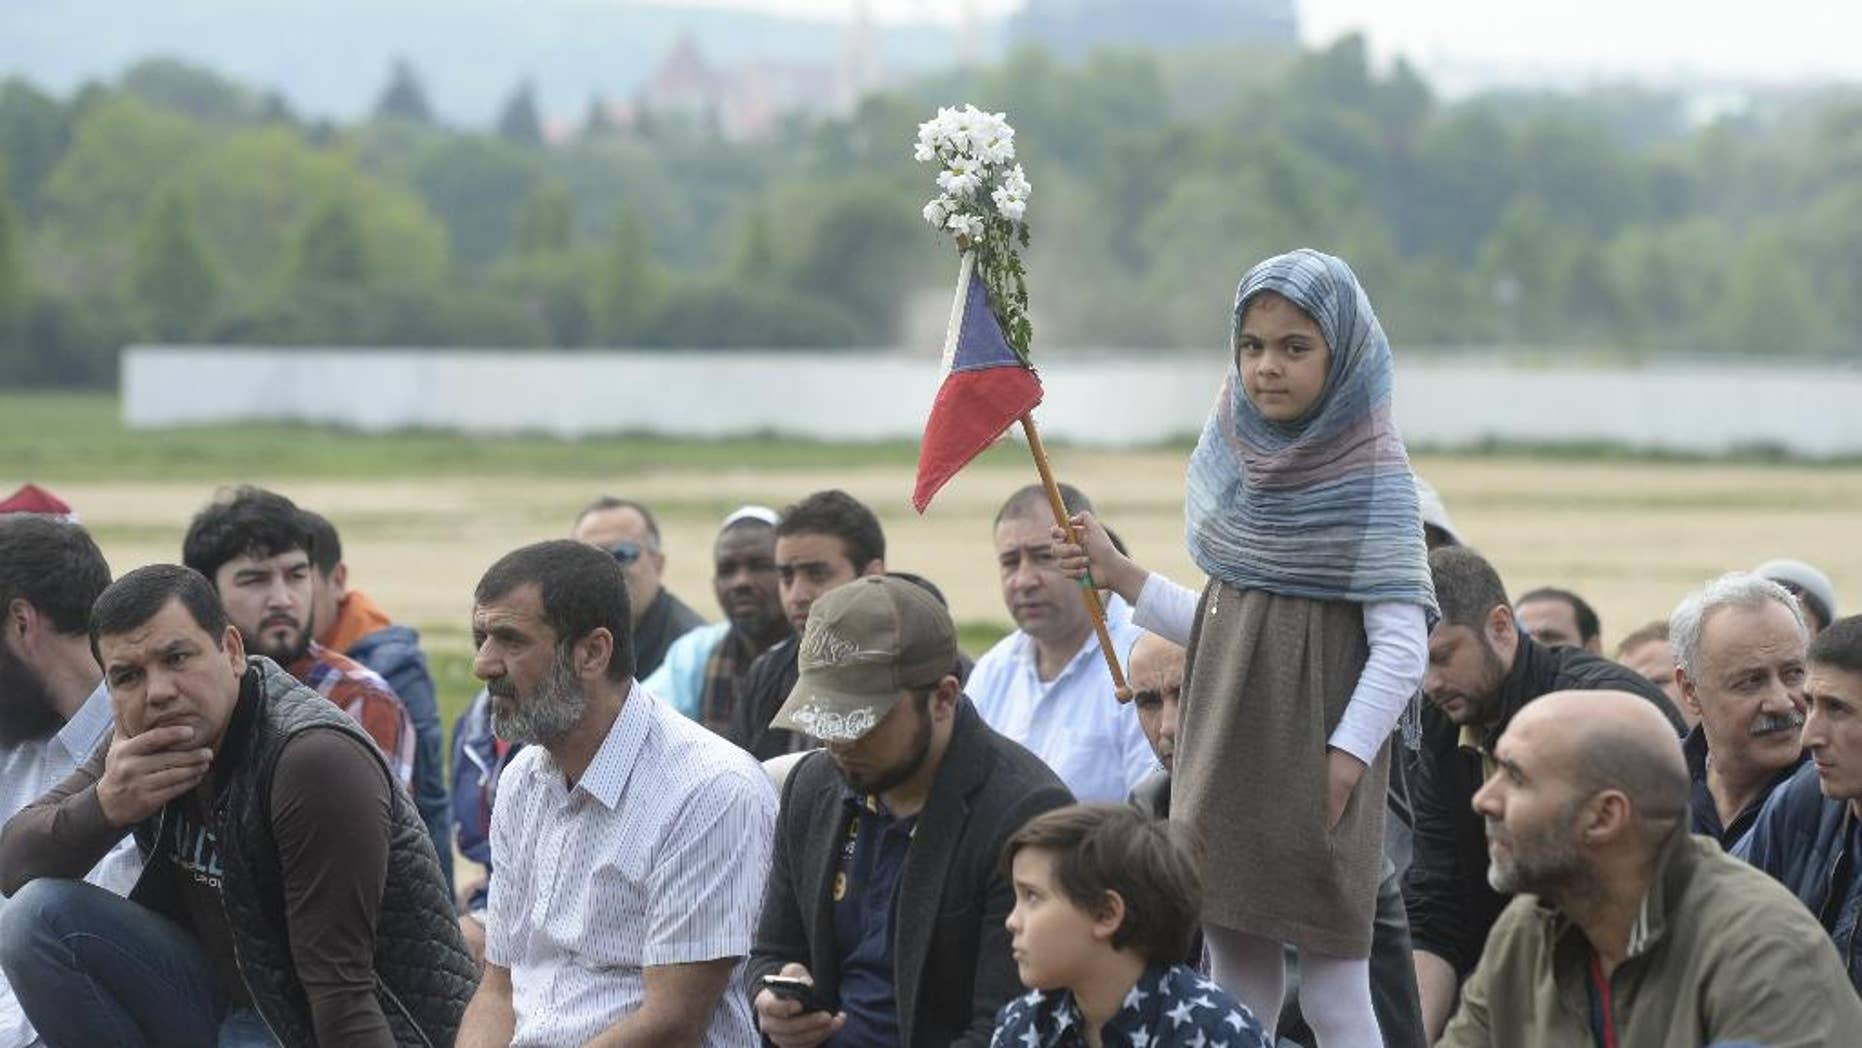 """Muslims living in the Czech Republic pray in front a headquarters of the Ministry of Interior to protest against a police raid in an Islamic center in the Czech capital last week in Prague, on Friday, May 2, 2014. Czech churches have sided with local Muslims who have complained about police raids in Islamic centers during prayers. The raids took place last Friday in Prague as police arrested a 55-year-old Czech who was charged with racism for publishing an Islamic book that police alleged spreads racism, anti-Semitism, xenophobia and violence against """"inferior races.""""  (AP Photo/CTK, Michal Krumphanzl) SLOVAKIA OUT"""